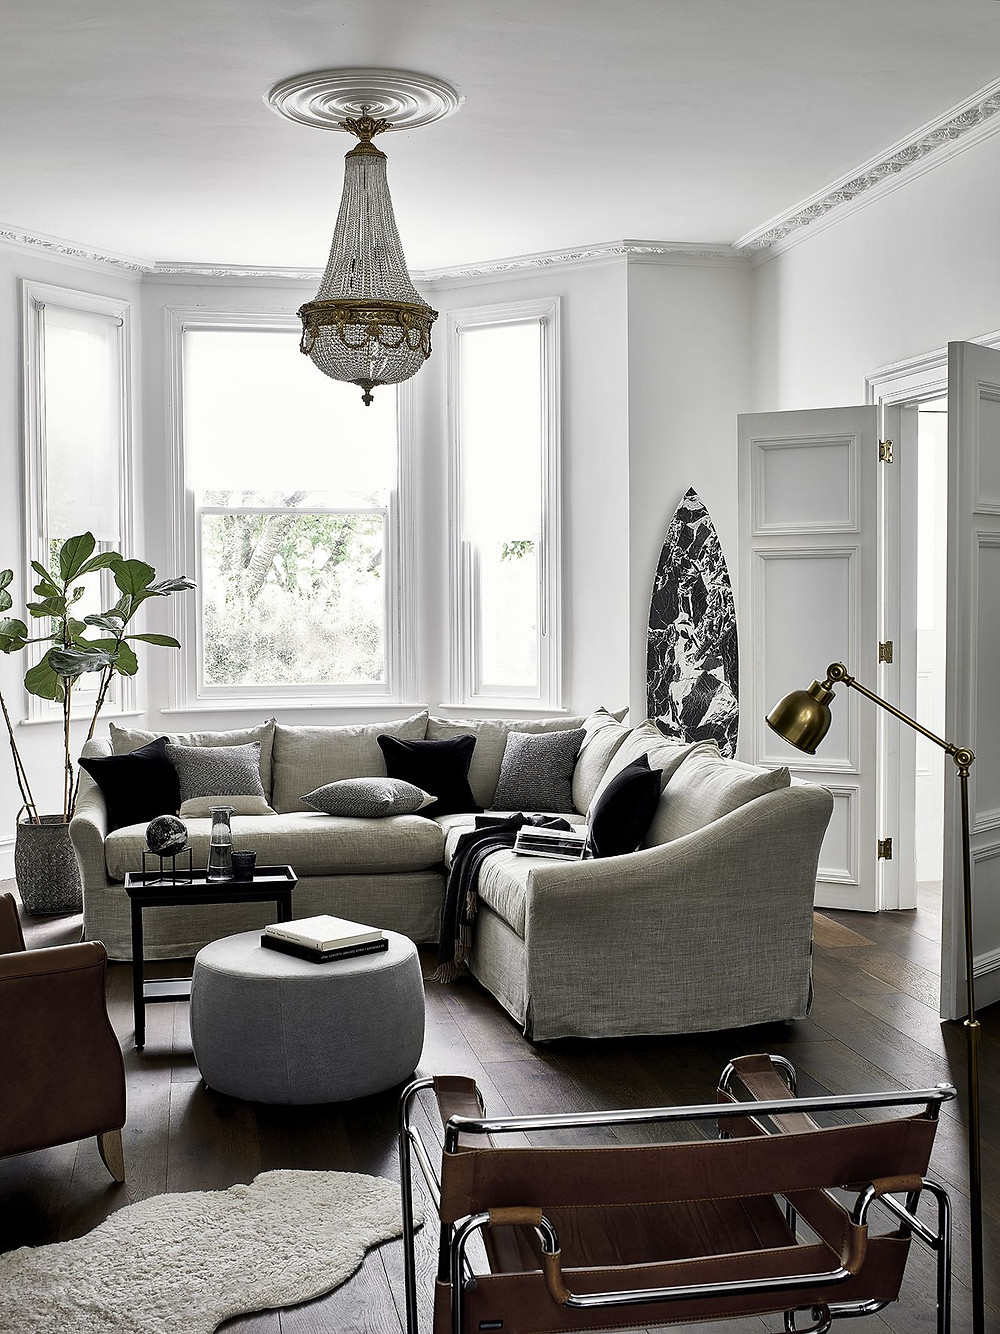 Expert Interior design tips to help you decorate your home using neutral colours. Lots of tips and tricks to make your living room, bedroom or kitchen more appealing in a sophisticated and timeless color palette. How to layer fabrics like a pro. Styling inspiration and monochrome interiors.